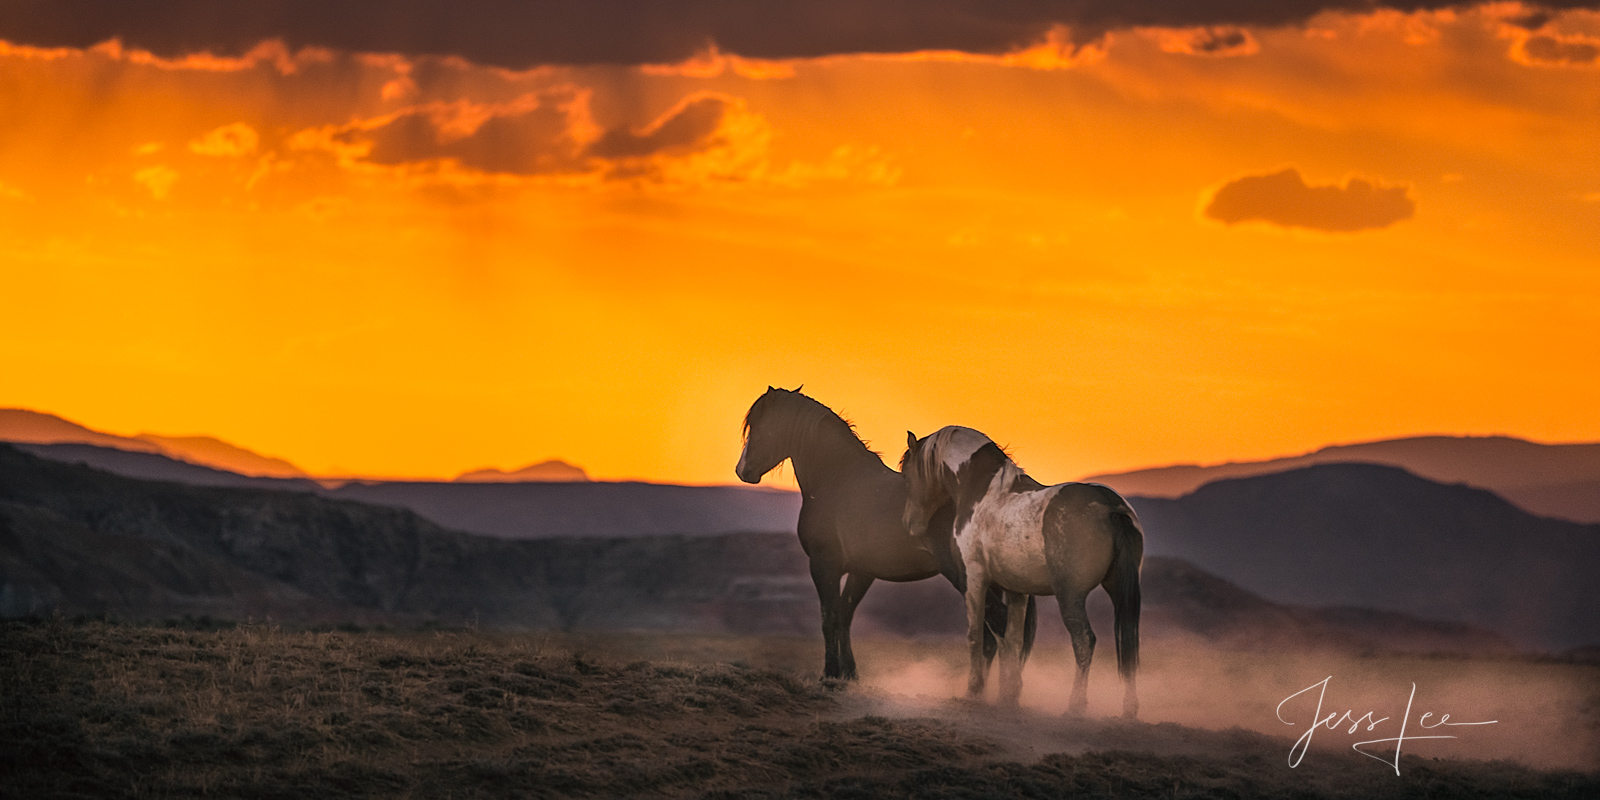 Fine Art Print of Wyoming Wild Horses at sunset. Limited Edition of 250 Luxurious Prints.  Choose the style, size, and medium...